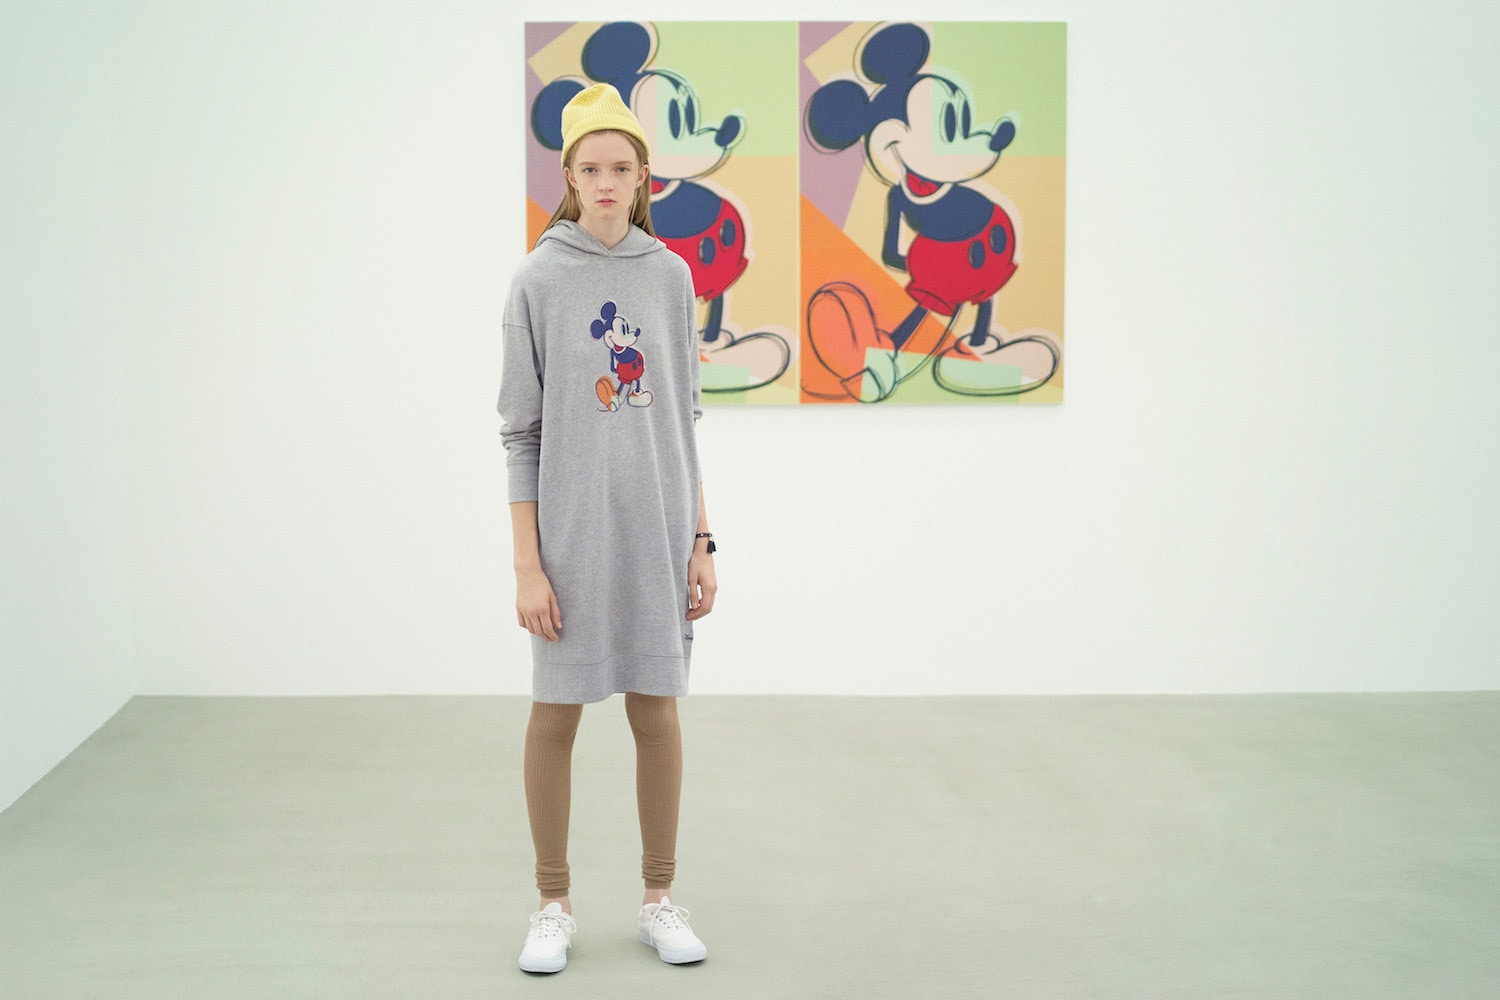 Model wearing a long hoodie featuring Andy Warhol's pop artwork